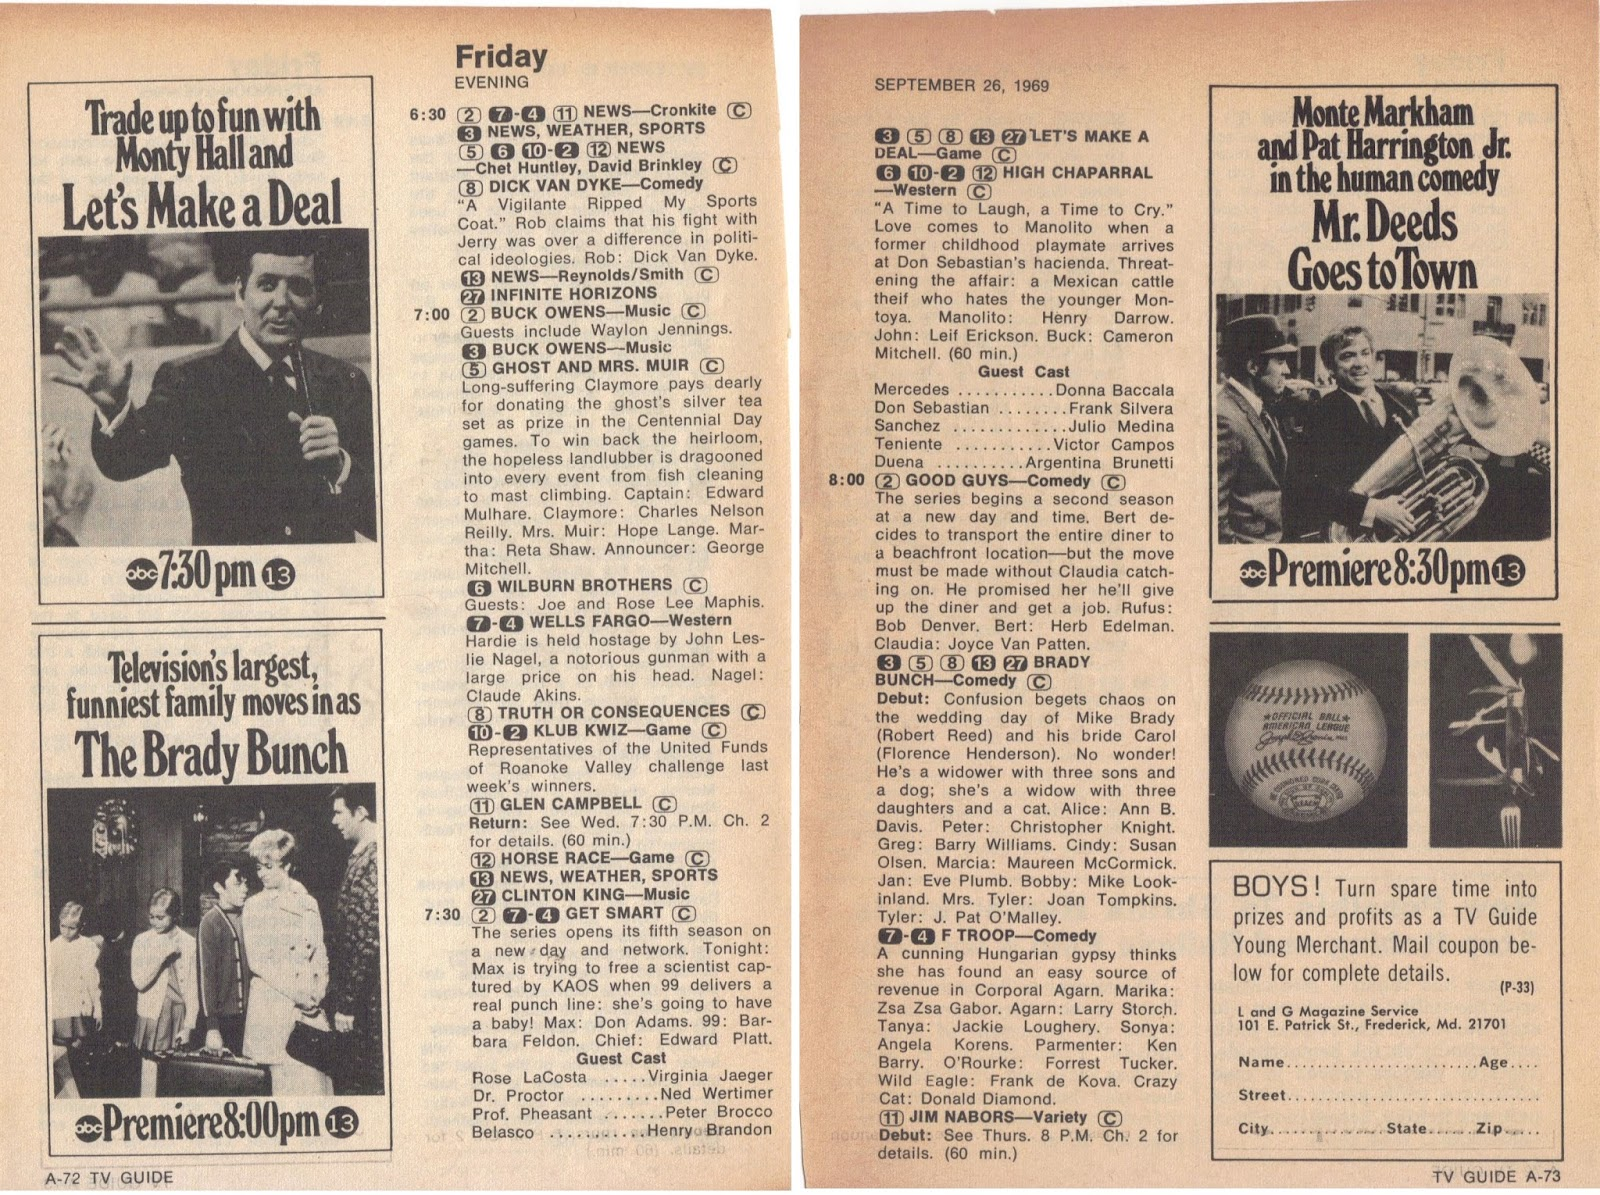 The Brady Bunch Blog  Friday Night TV Guide in 1969 Friday Night TV Guide in 1969